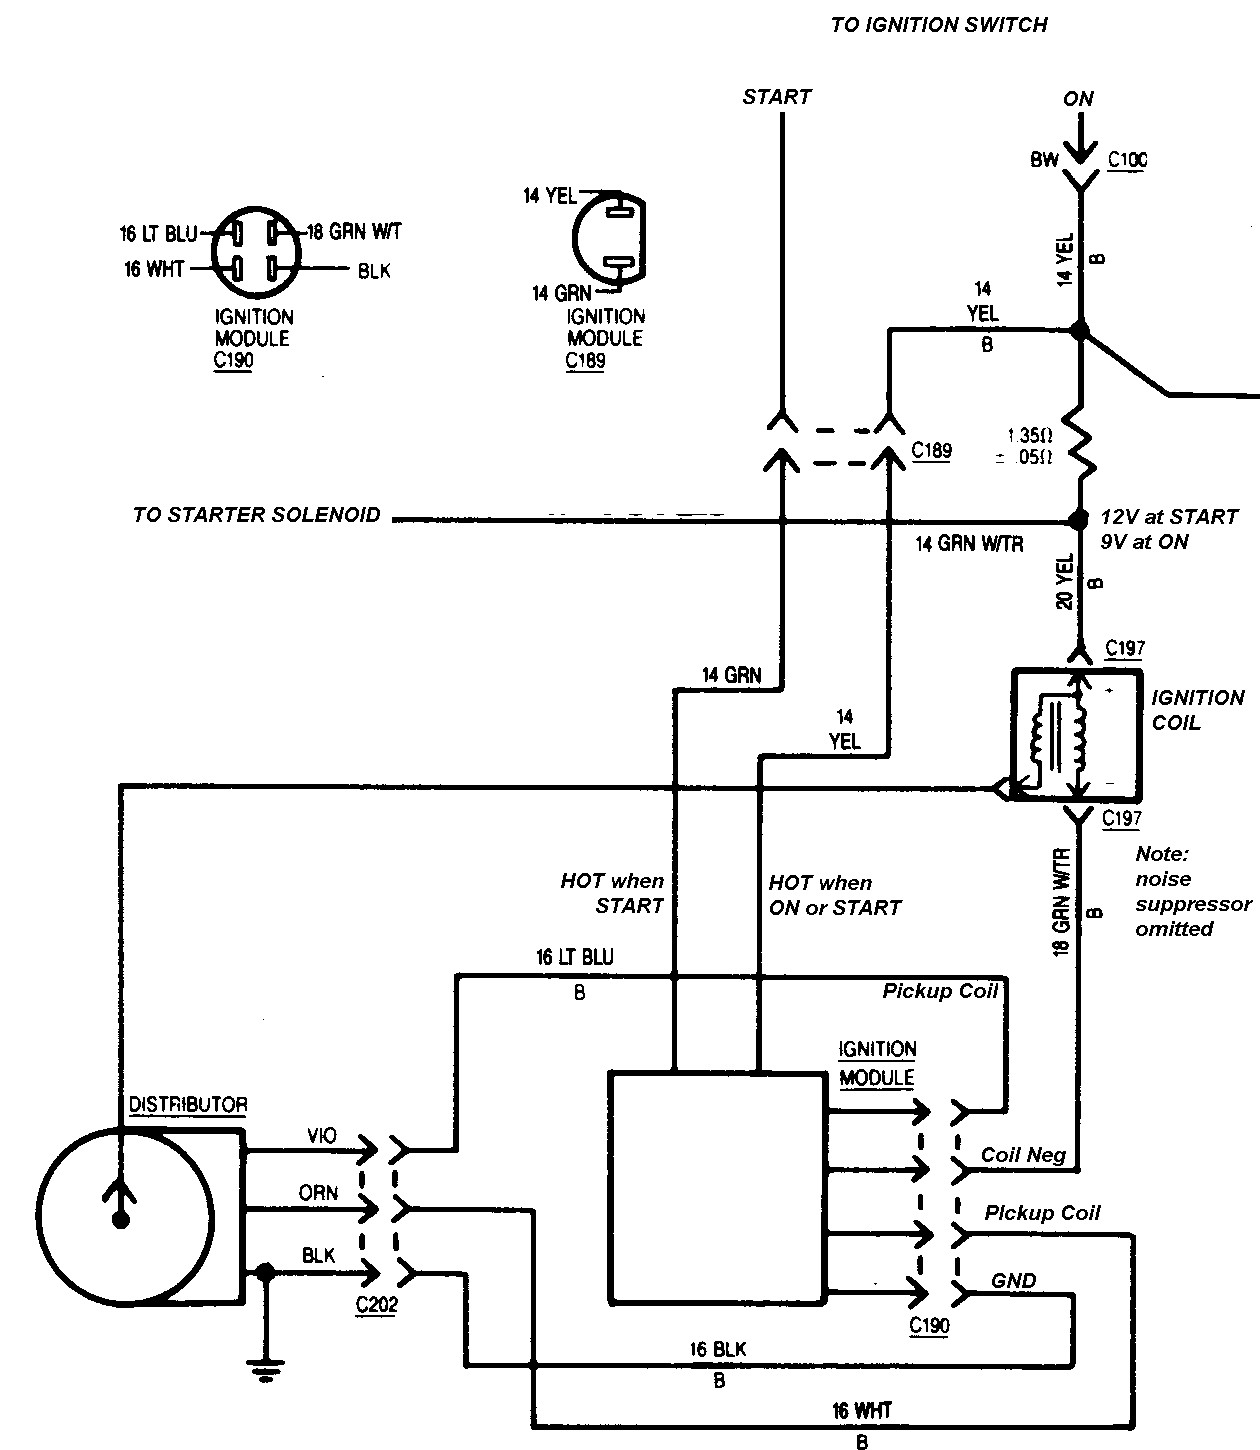 1989 Chevy C1500 Starter Solenoid Wiring Diagram Will Be A Jeep Gm Ignition Wire Harness Data Schema Rh Site De Joueurs Com Ford